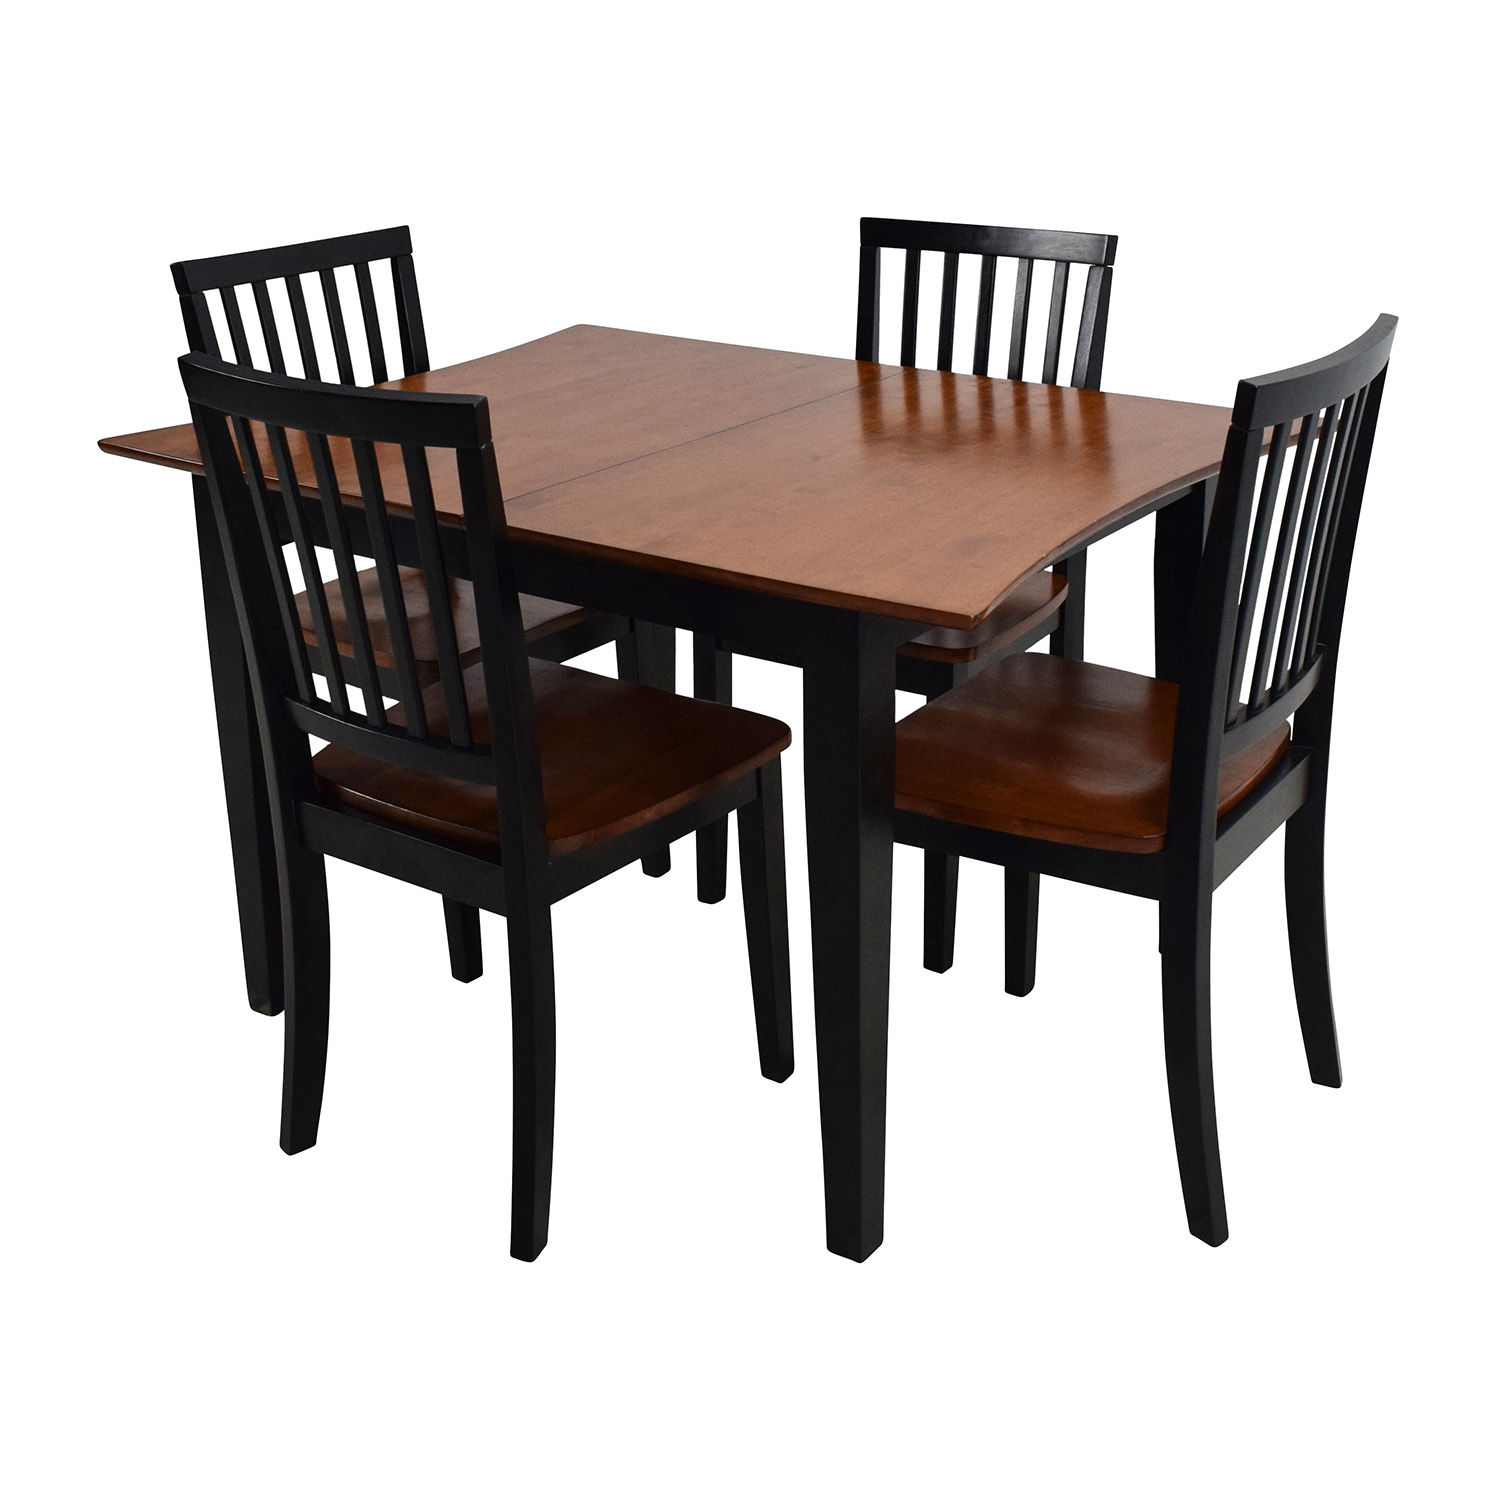 Bobs Discount Furniture Bobs Furniture Extendable Dining Set used